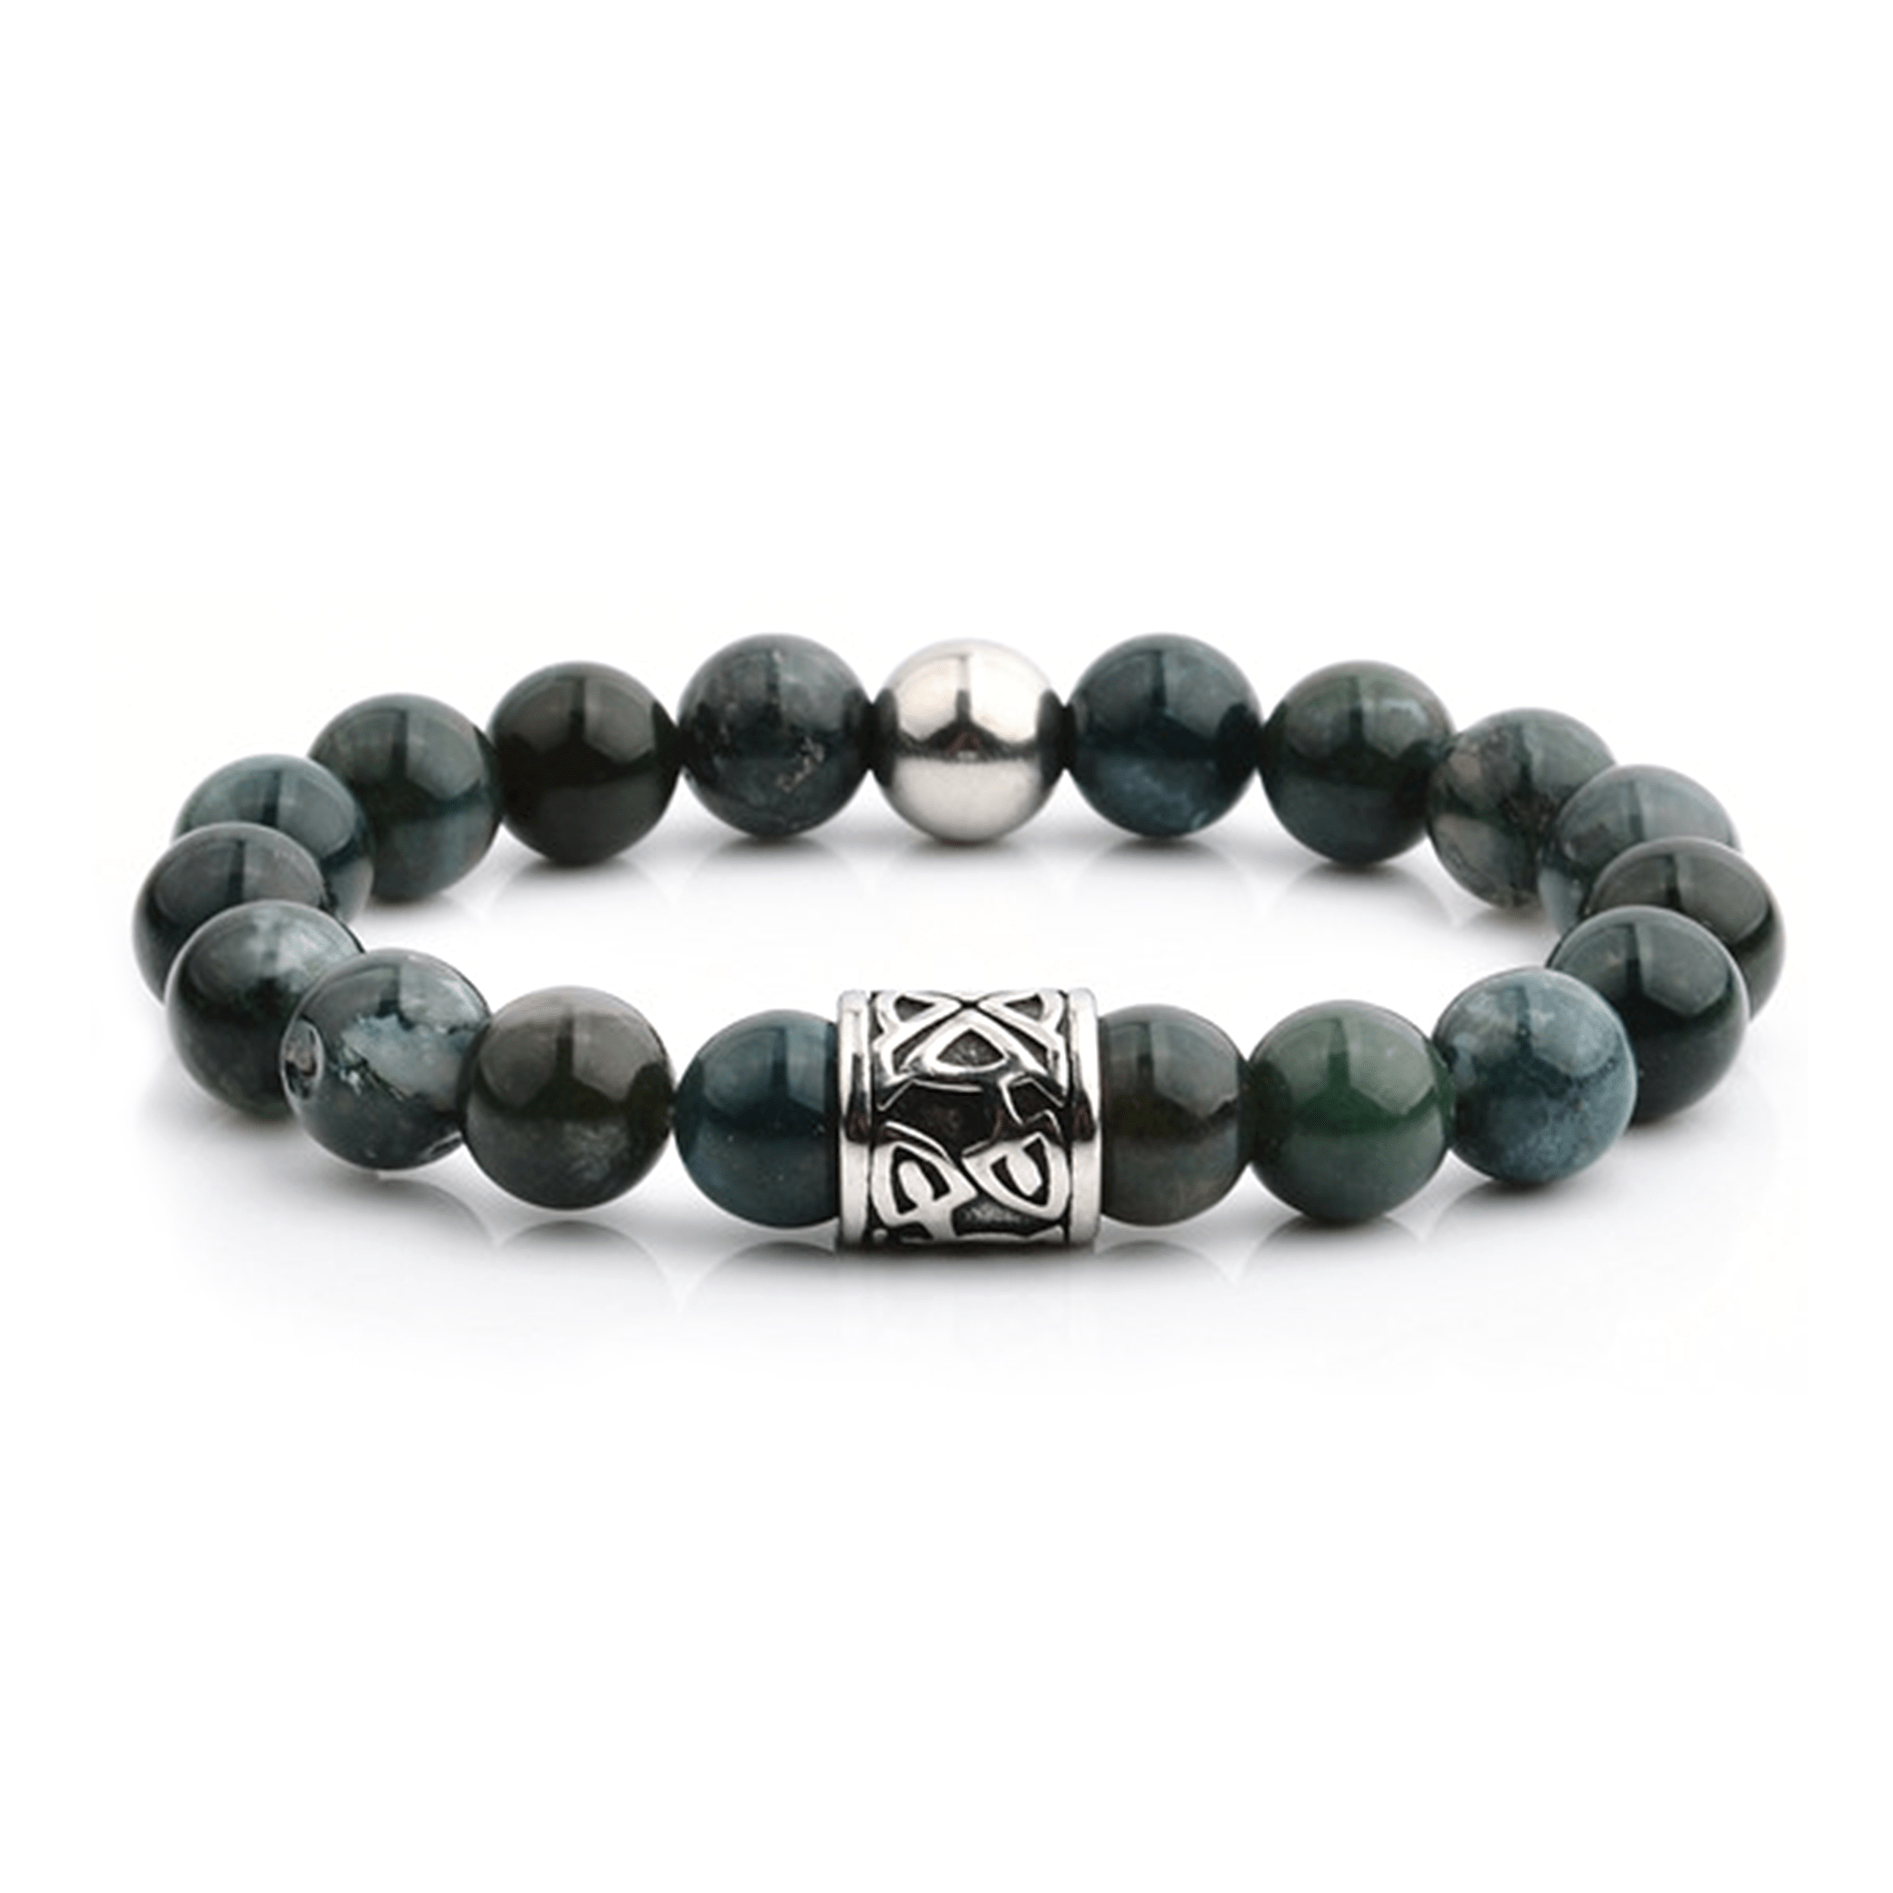 HYLIZO X Series 182 - Green Marble Beaded bracelet with 316 Stainless Steel Luxury Engraving